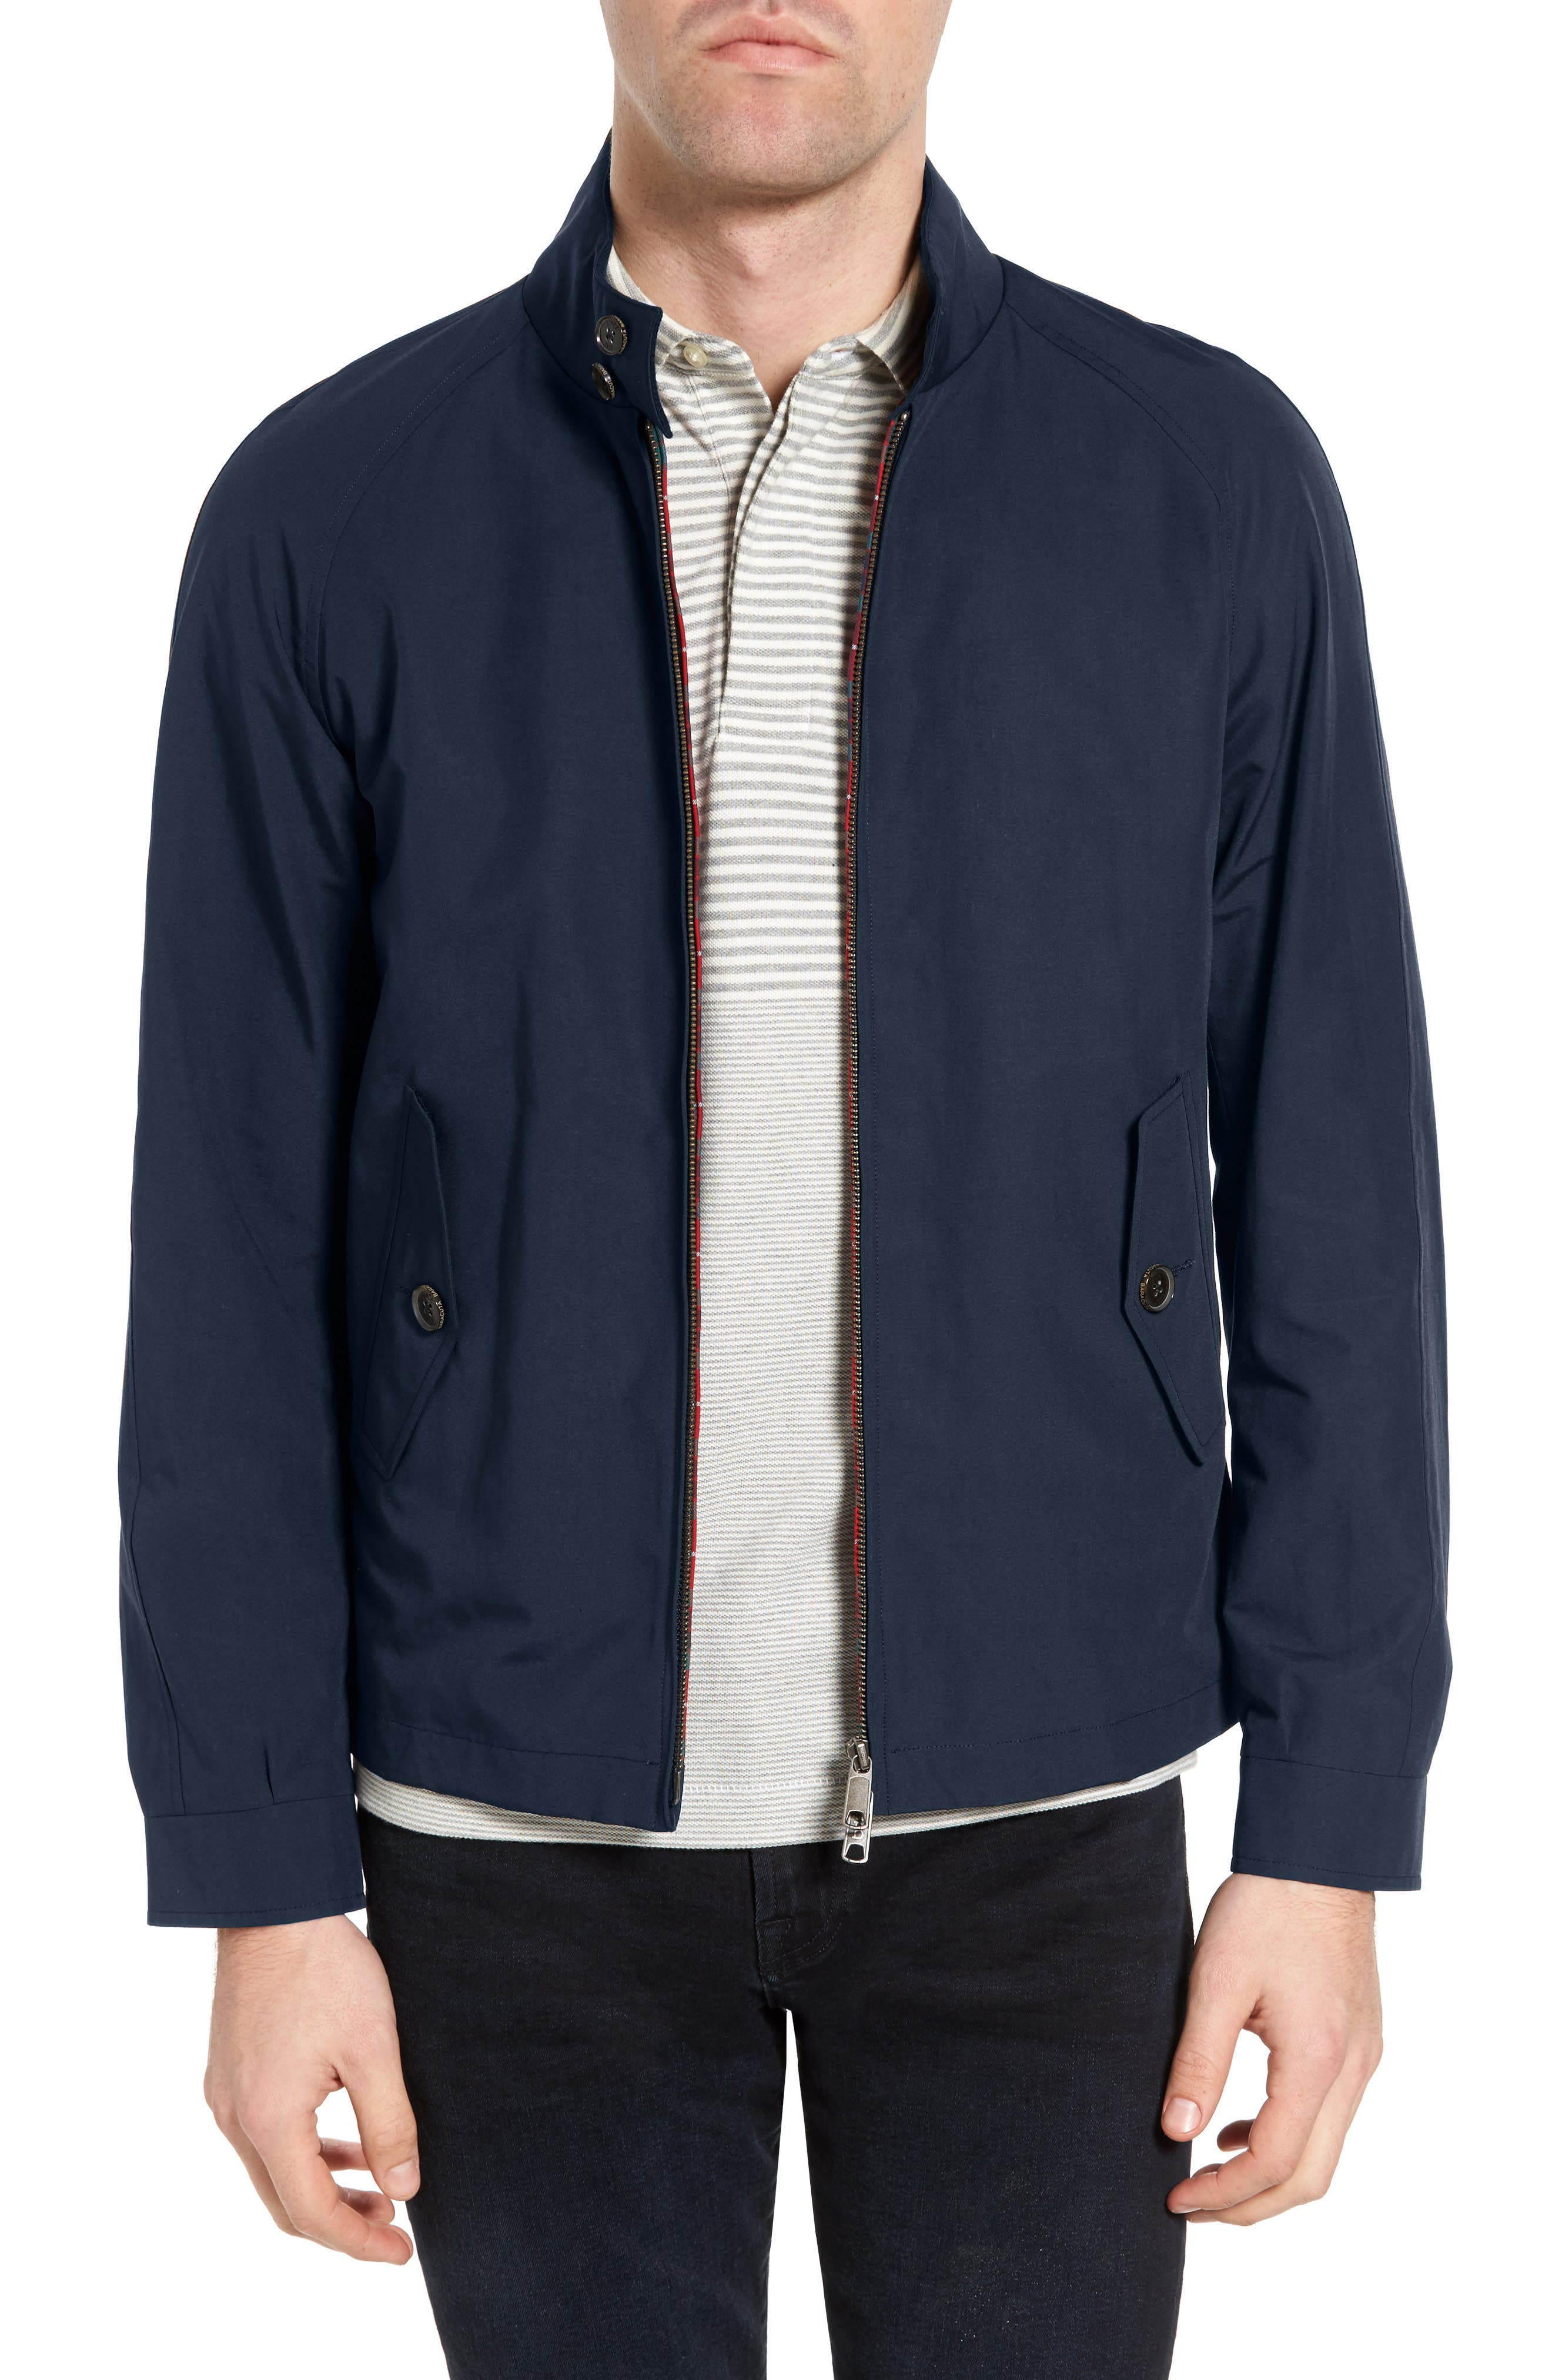 G4 Water Repellent Harrington Jacket,                         Main,                         color, NAVY